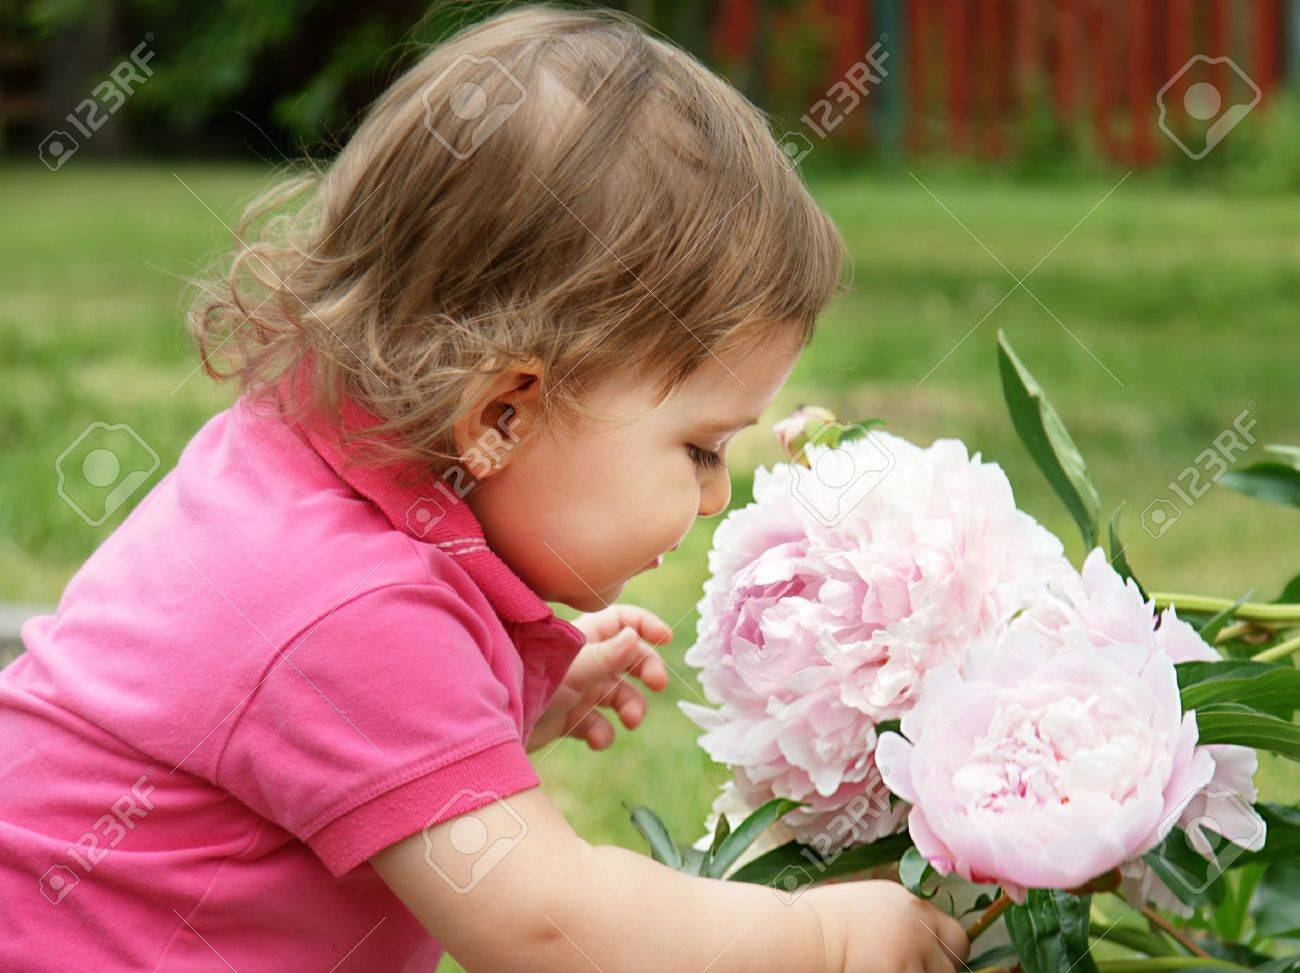 sweet baby girl smelling pale pink peonies flowers in the garden